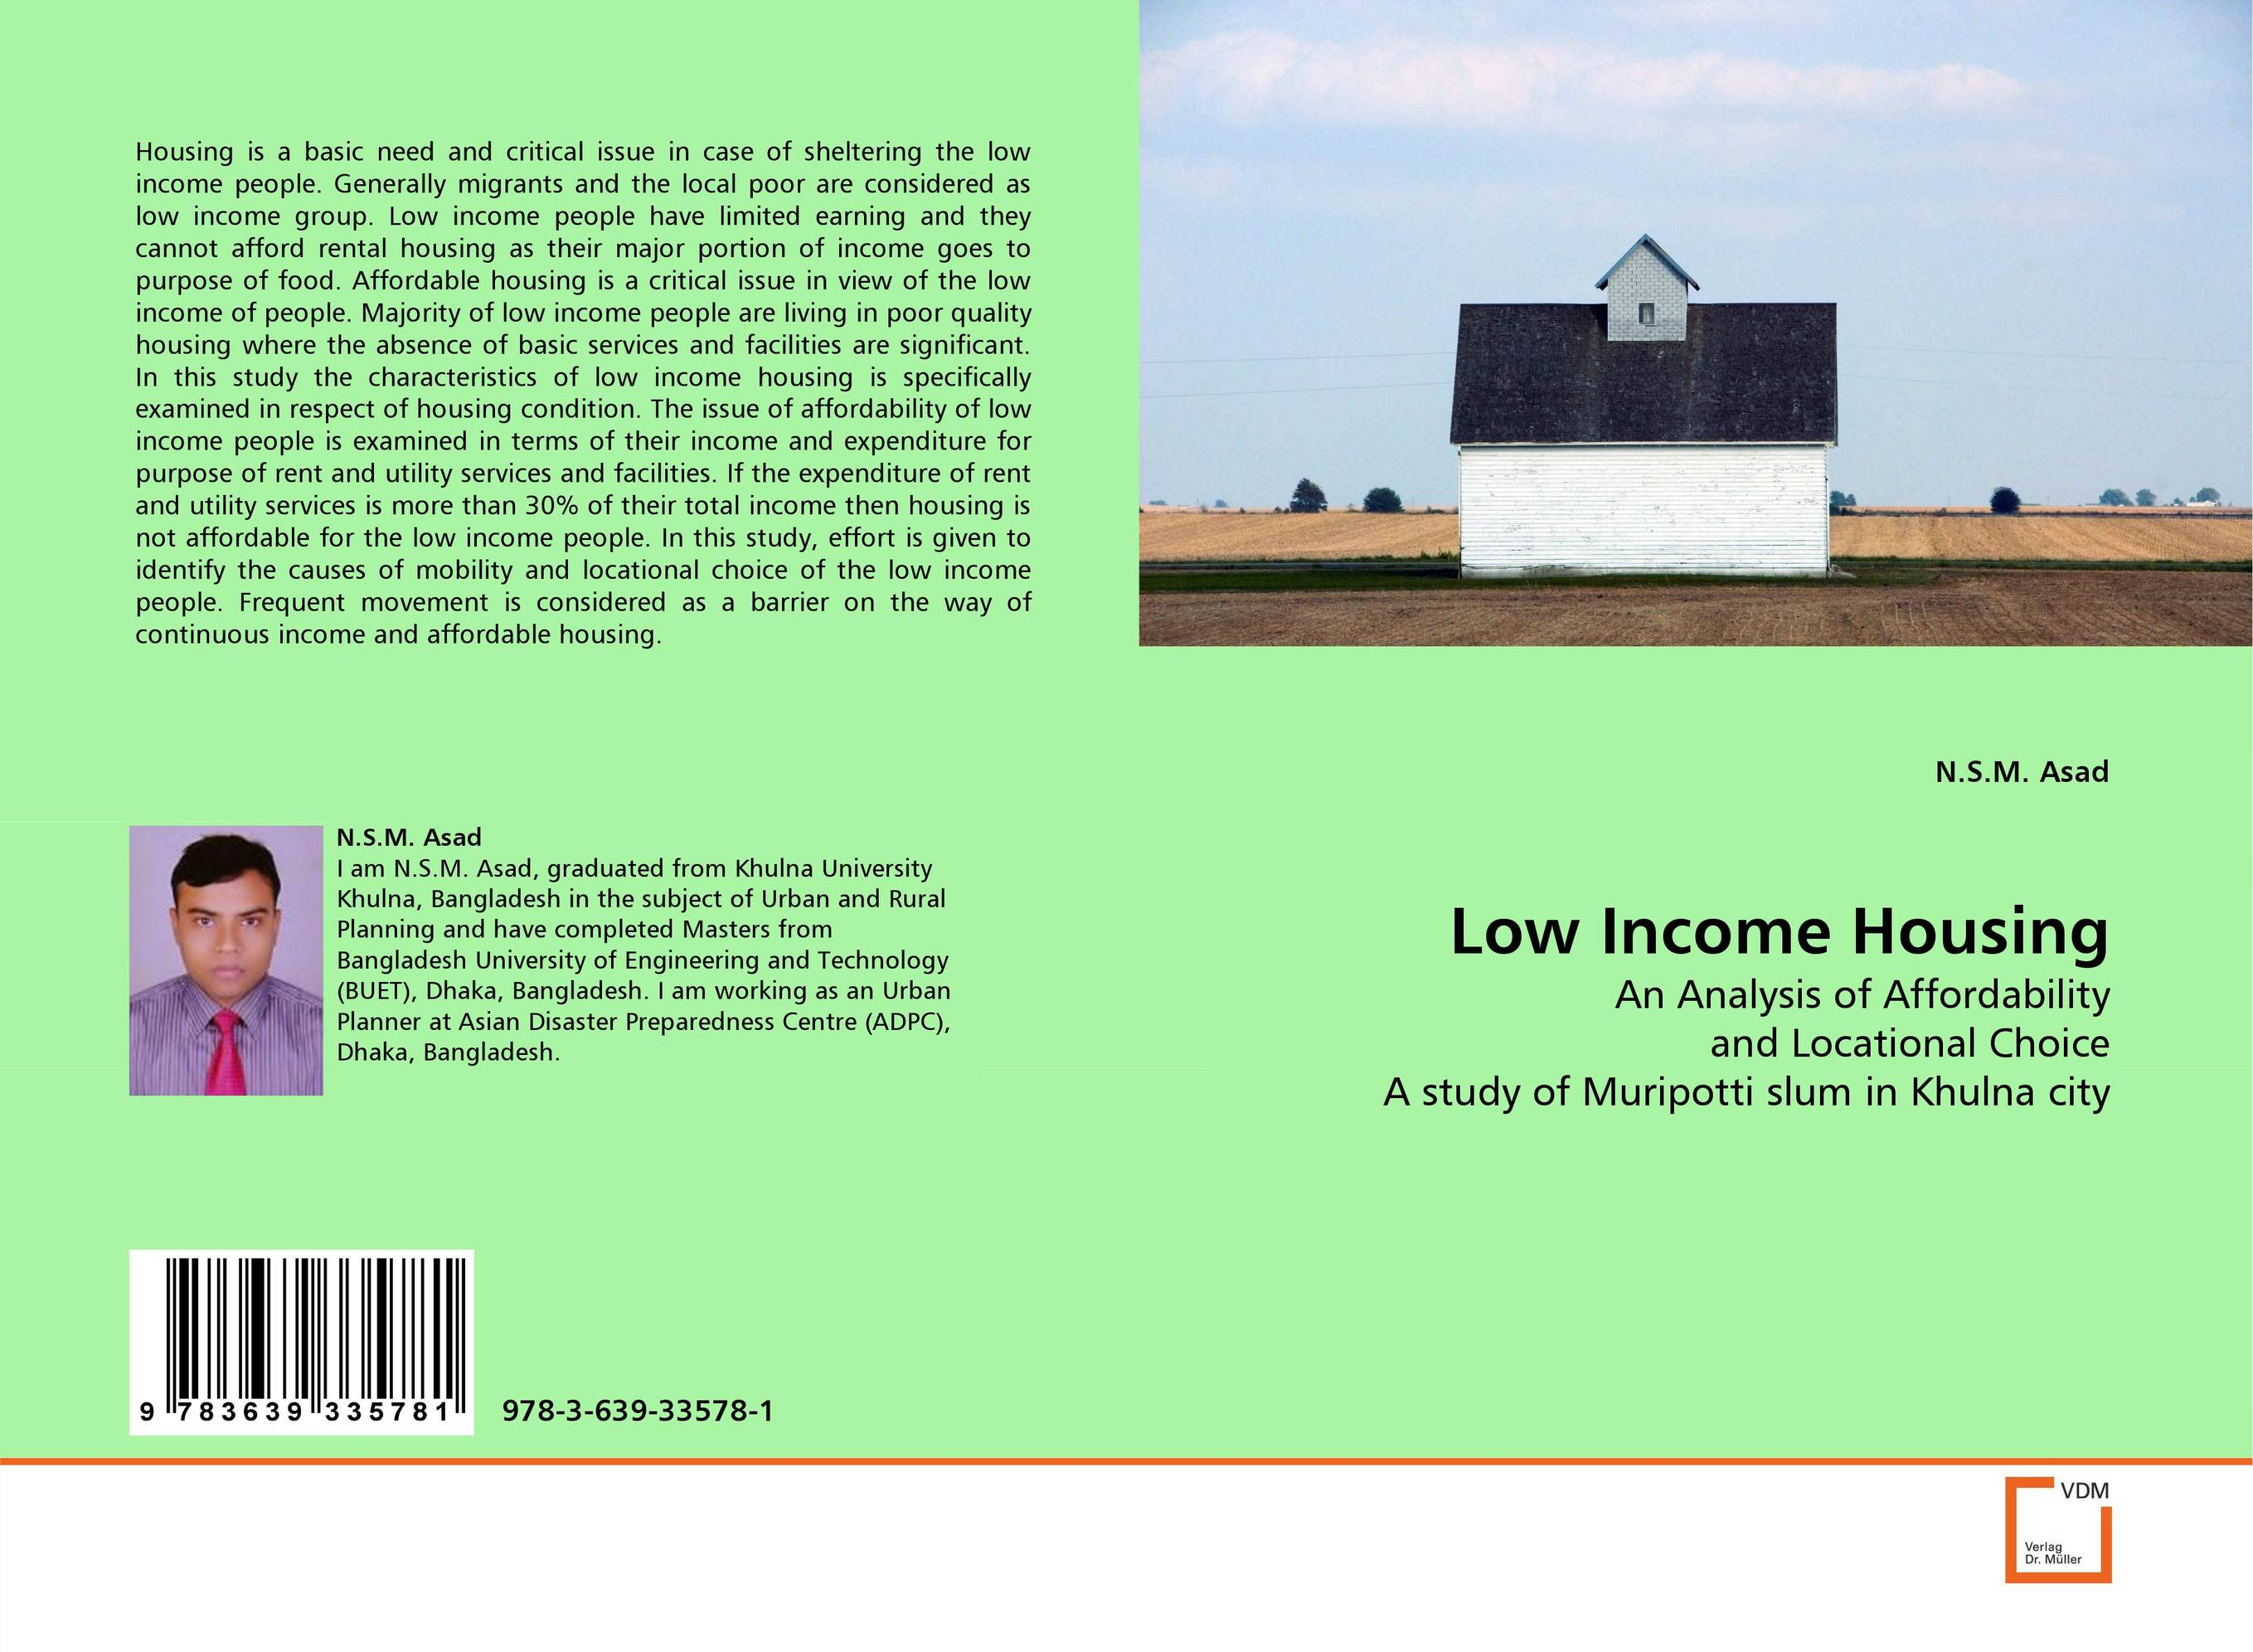 Low Income Housing john m peckham iii a master guide to income property brokerage boost your income by selling commercial and income properties